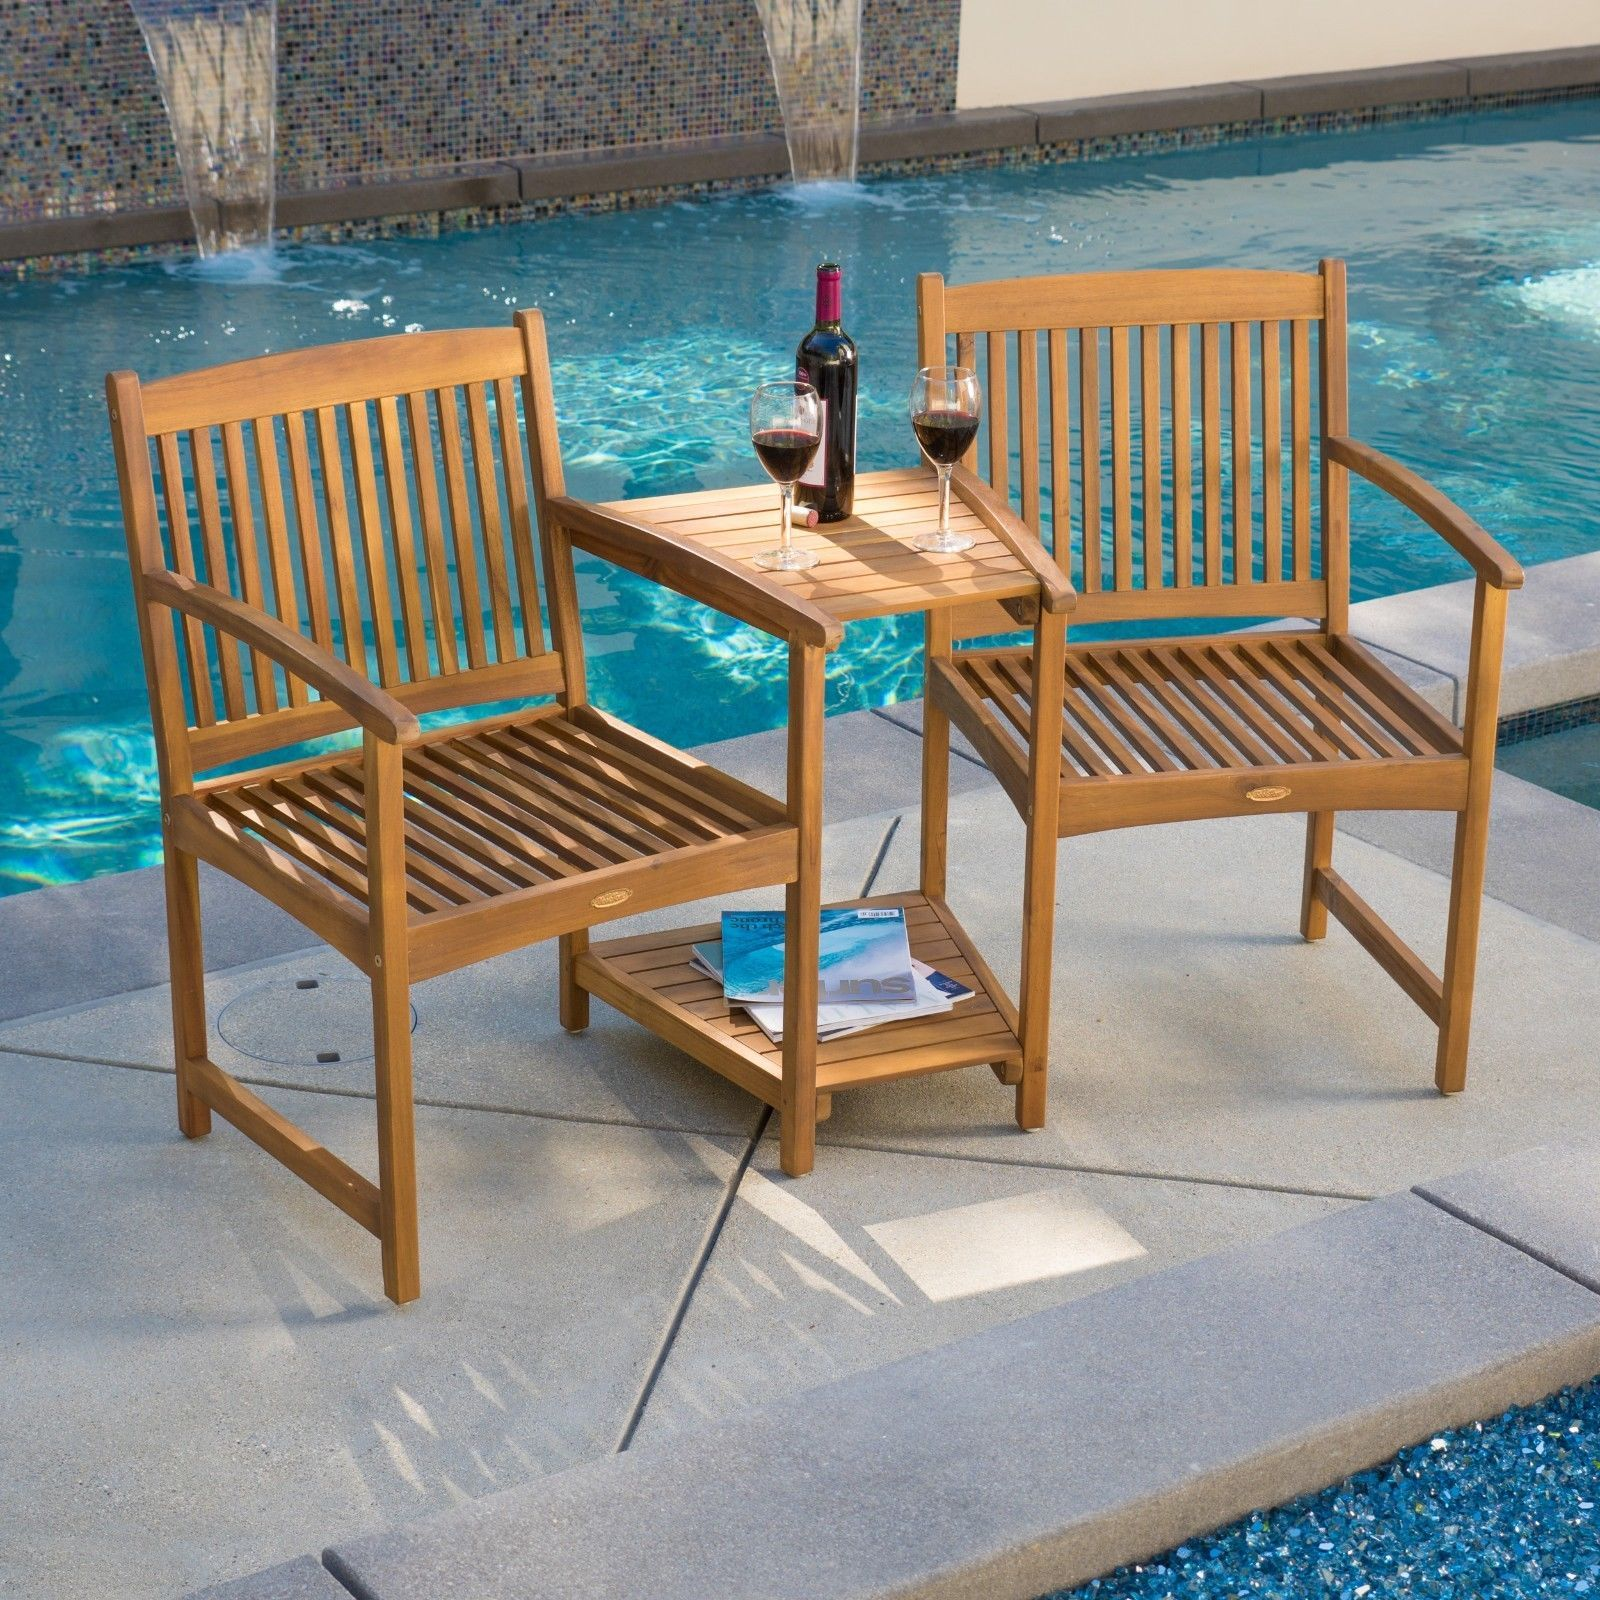 Outdoor Patio Furniture Adjoining Chairs & Table Two ...